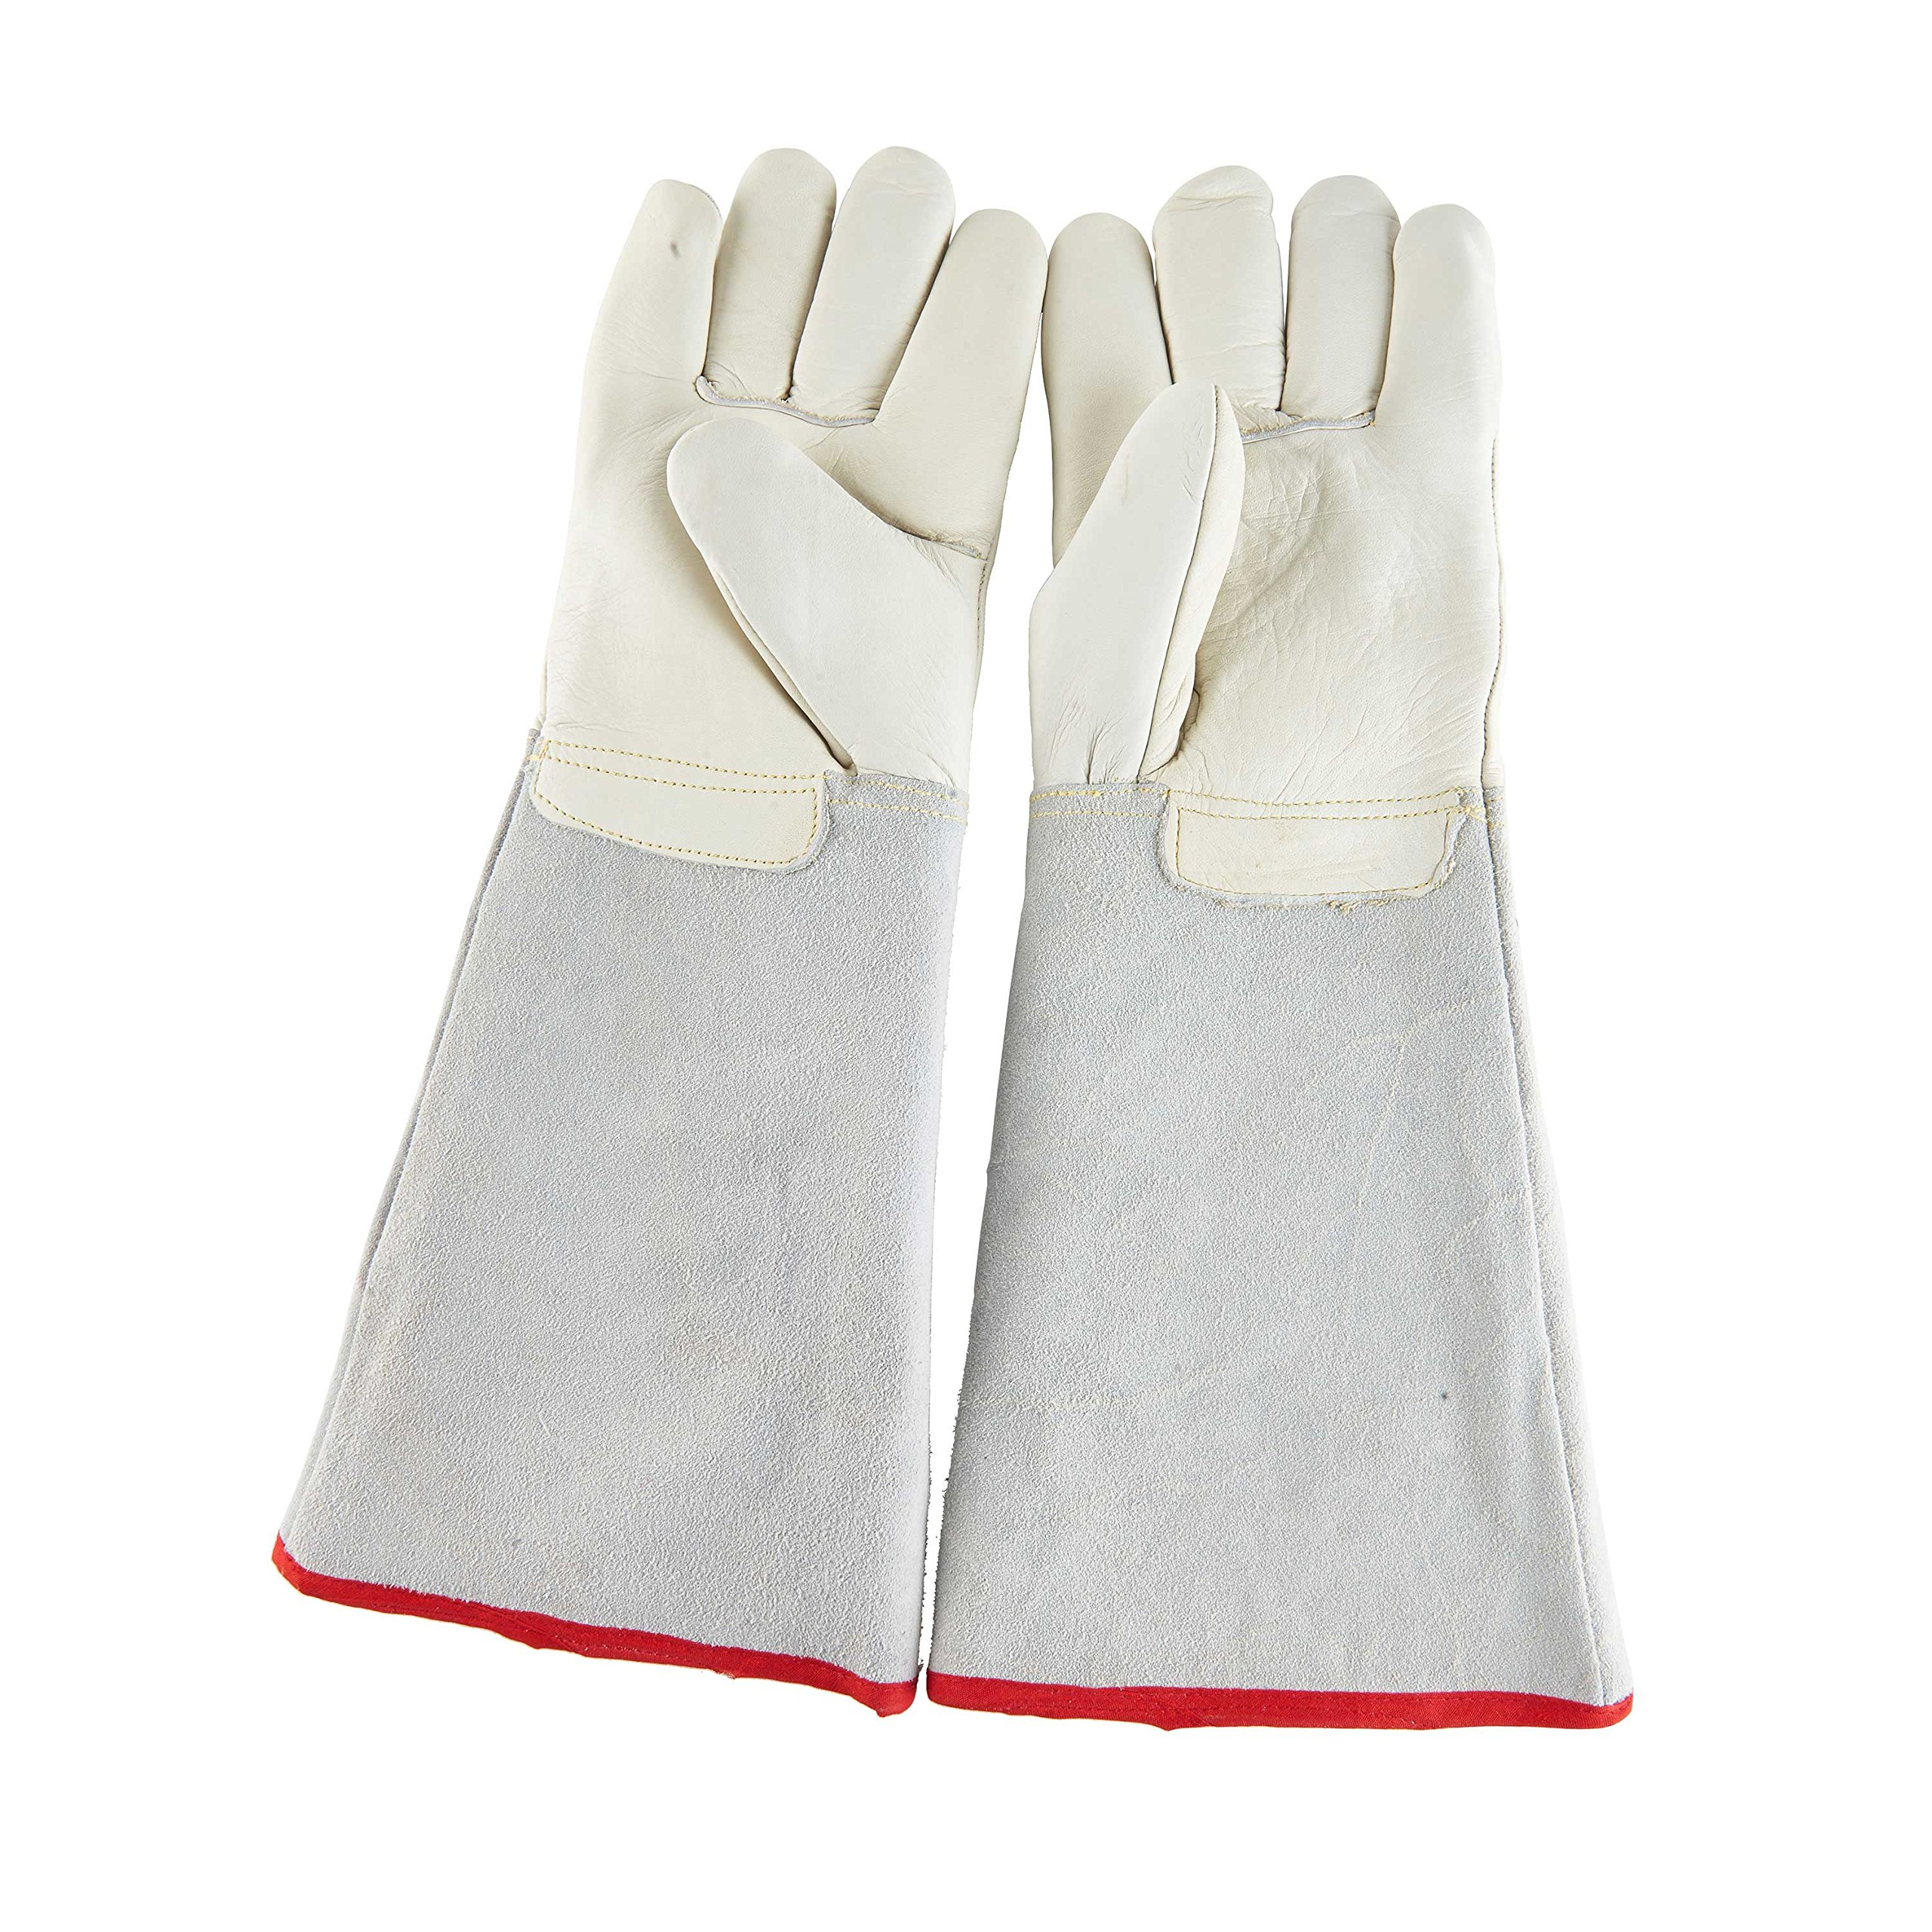 Ultra Long Cryogenic Gloves Waterproof Protective Gloves Liquid Nitrogen Frozen Gloves Cold Storage 17.72''